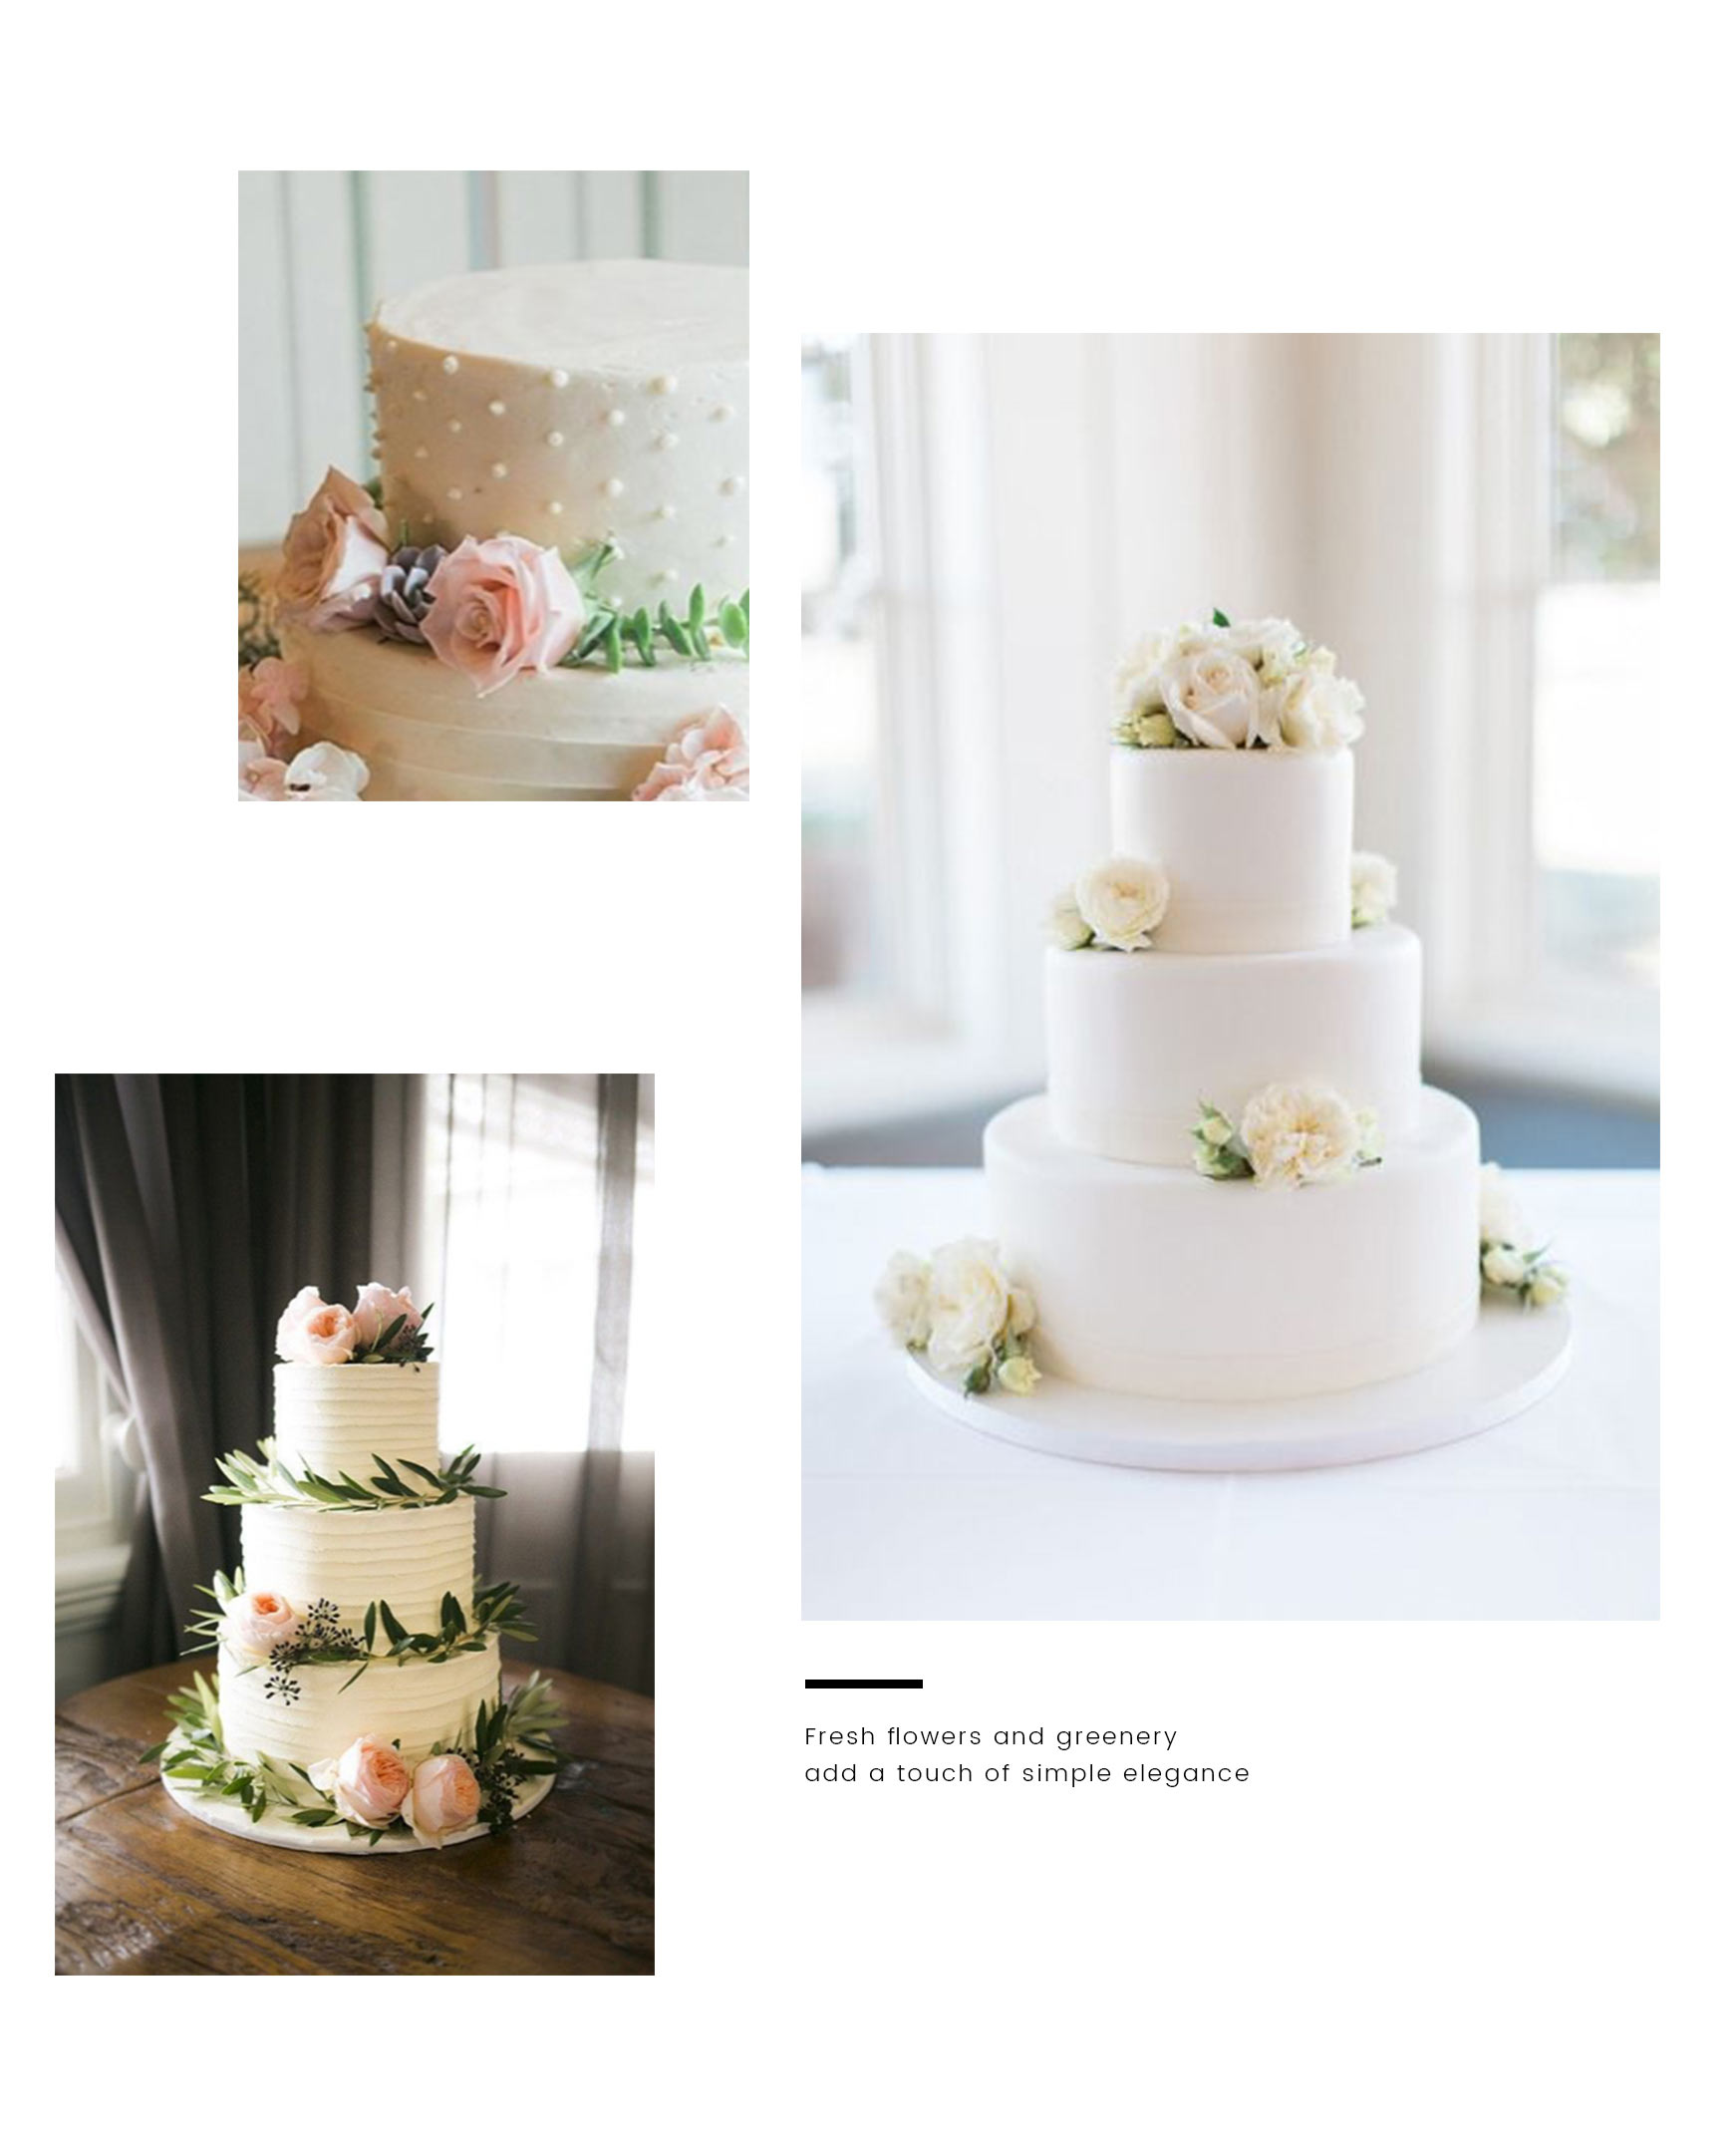 Wedding cakes from Bird Bakery decorated with fresh flowers. Caption: Fresh flowers and greener add a touch of simple elegance.